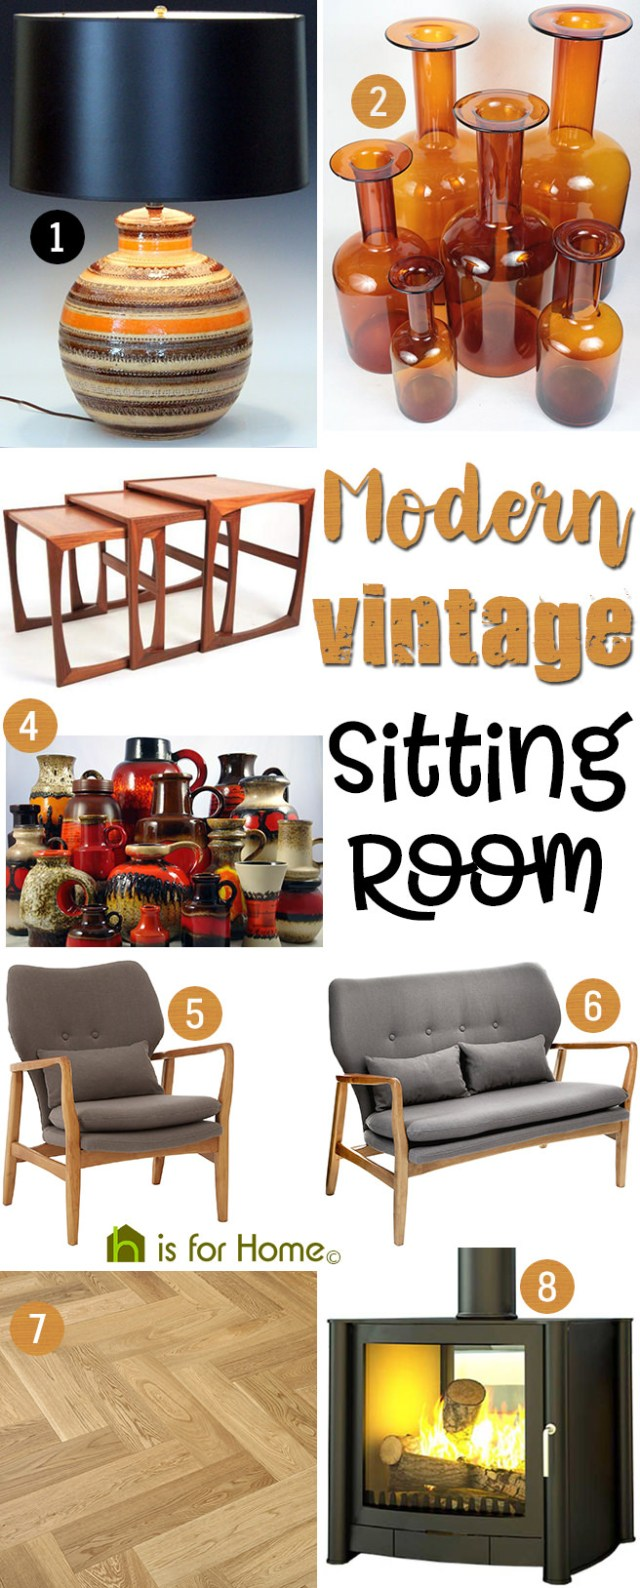 Get their look: Modern vintage sitting room | H is for Home